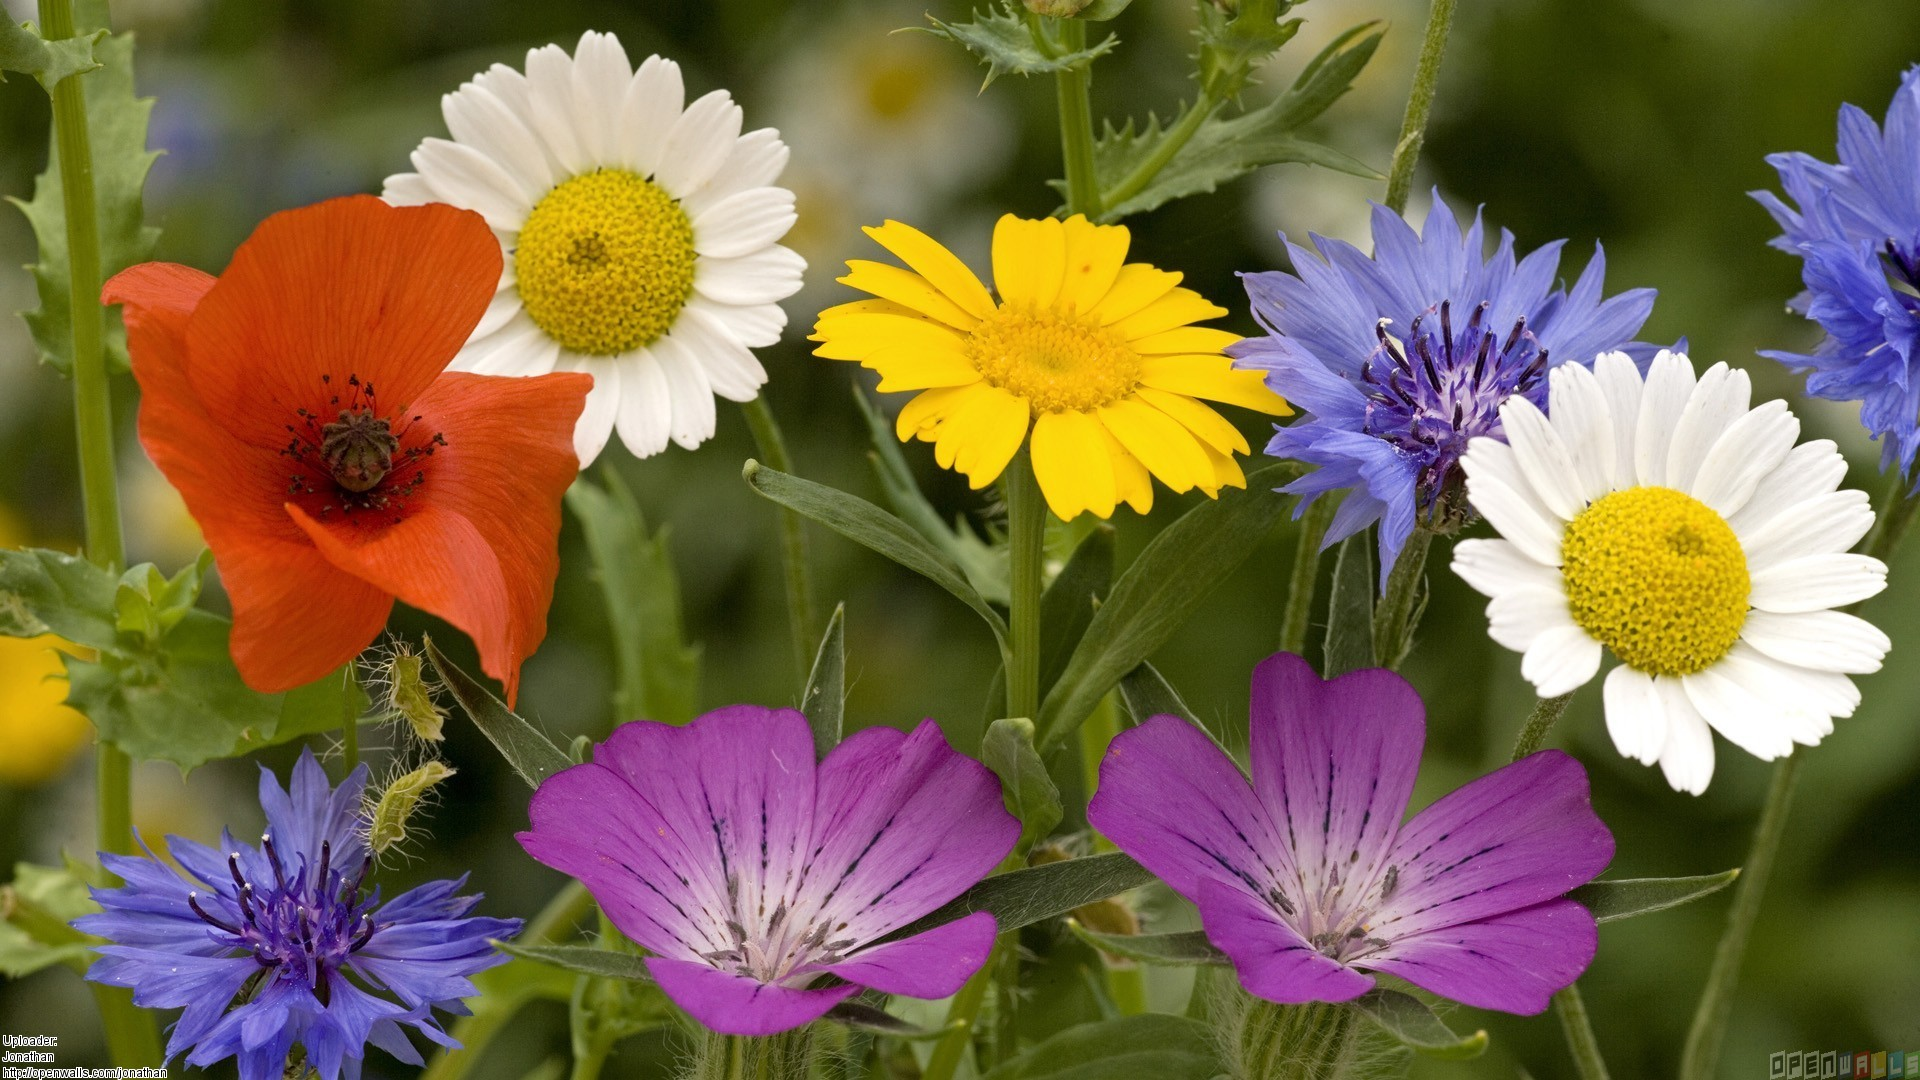 Summer Flowers Wallpaper Open Walls Background Images Free